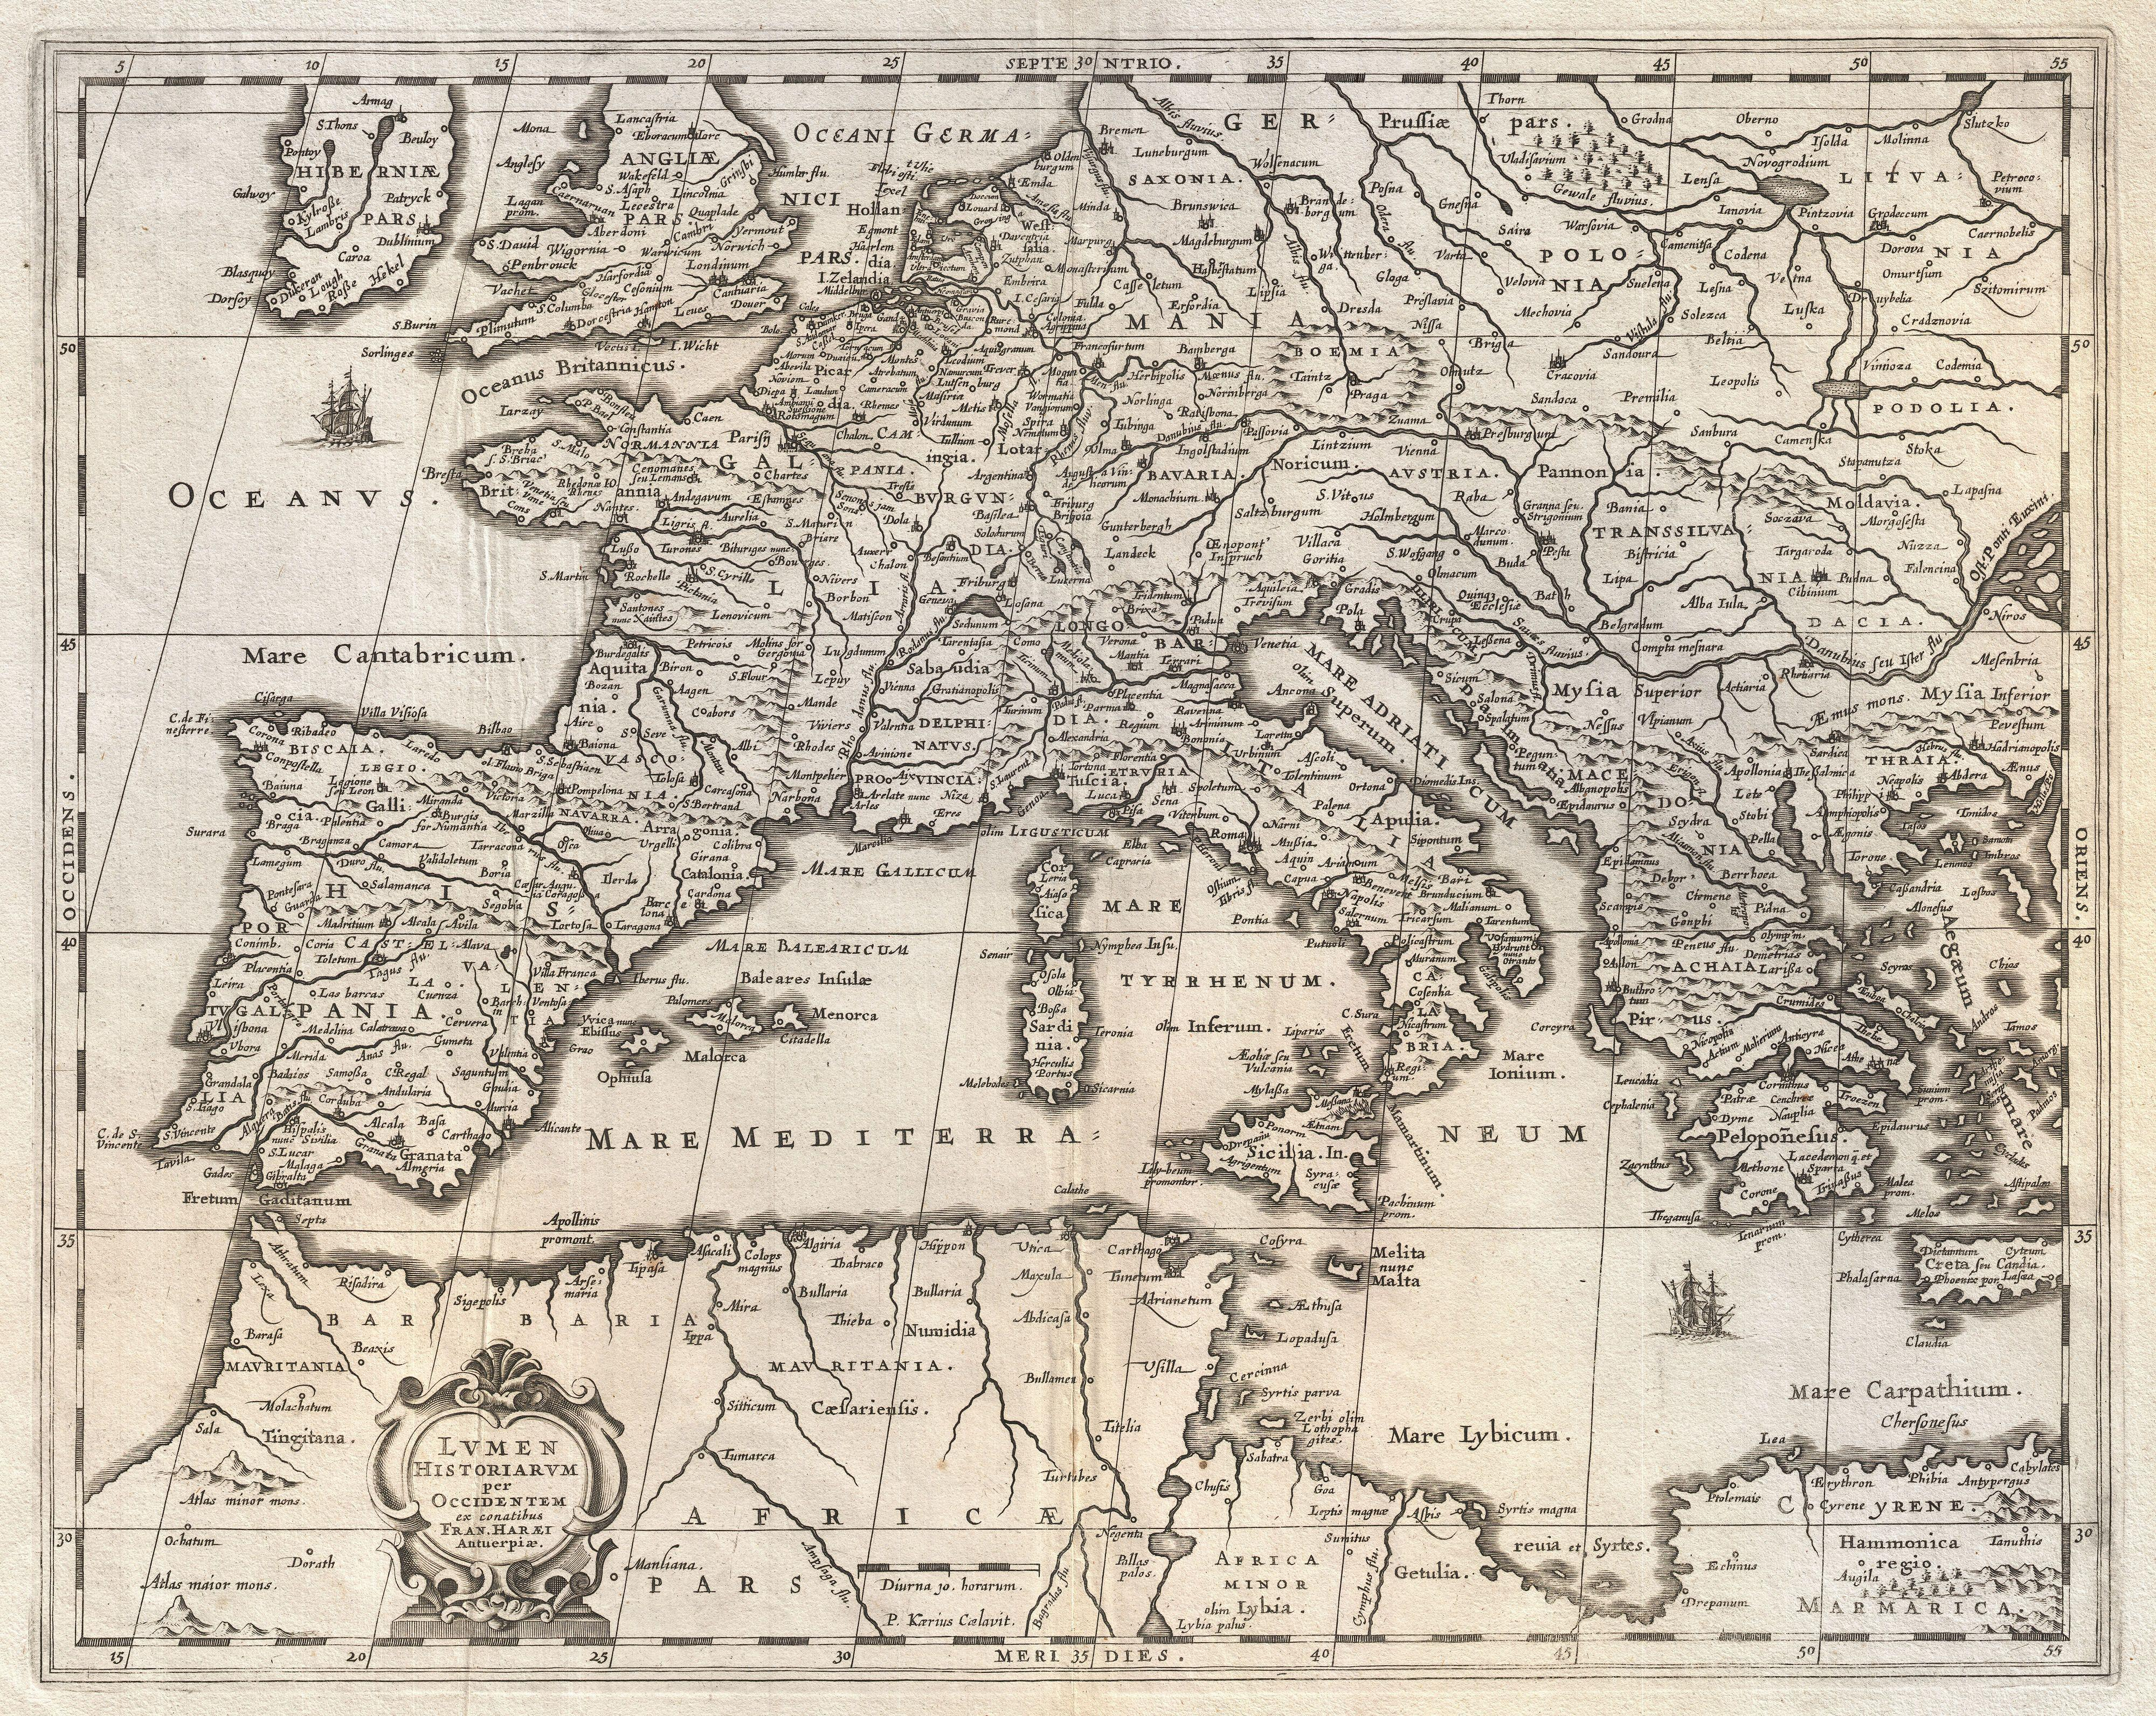 Old Map of Italy and Mediterranean